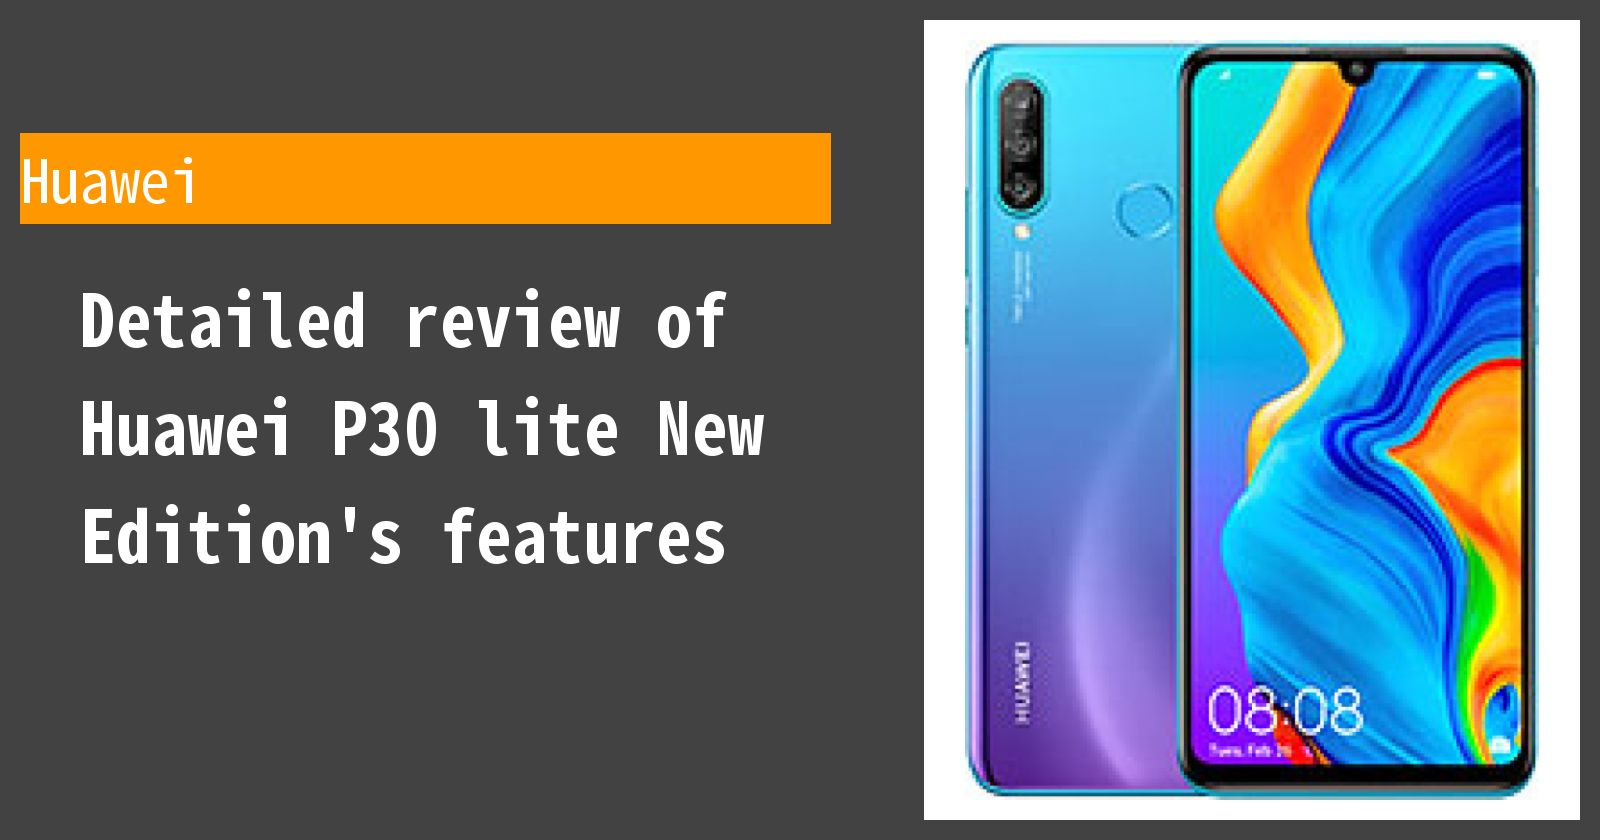 Detailed review of Huawei P30 lite New Edition's features